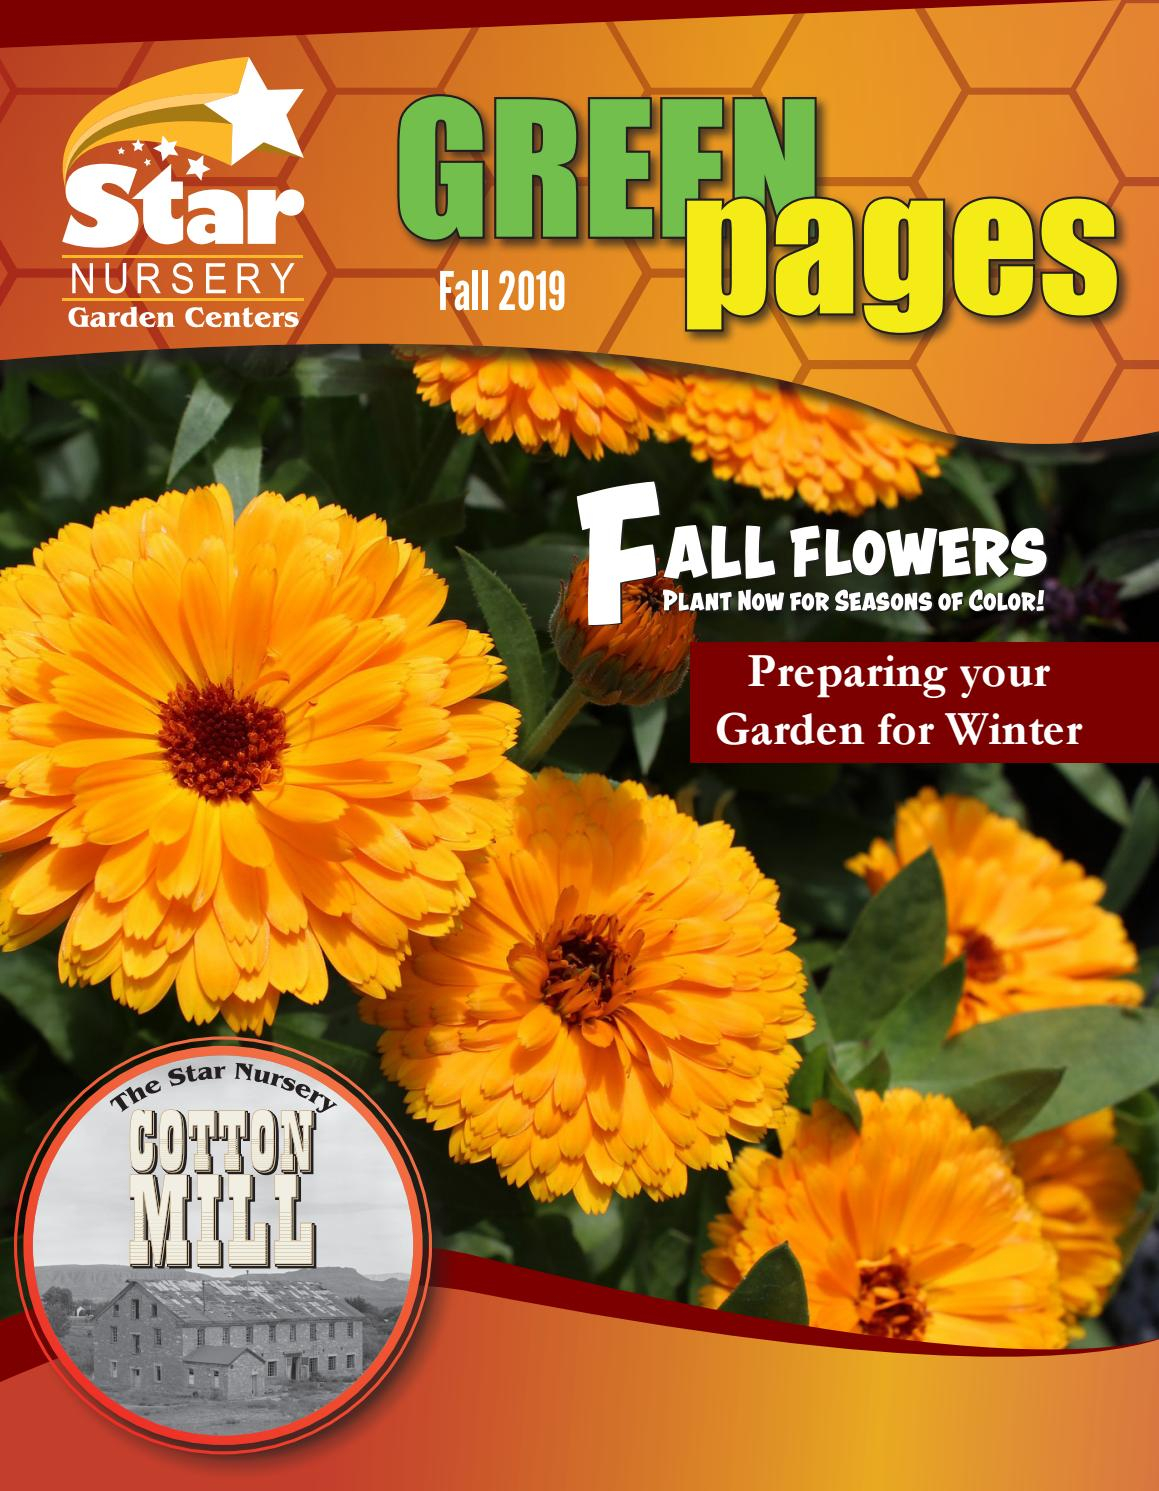 Green Pages Fall 2019 By Star Nursery